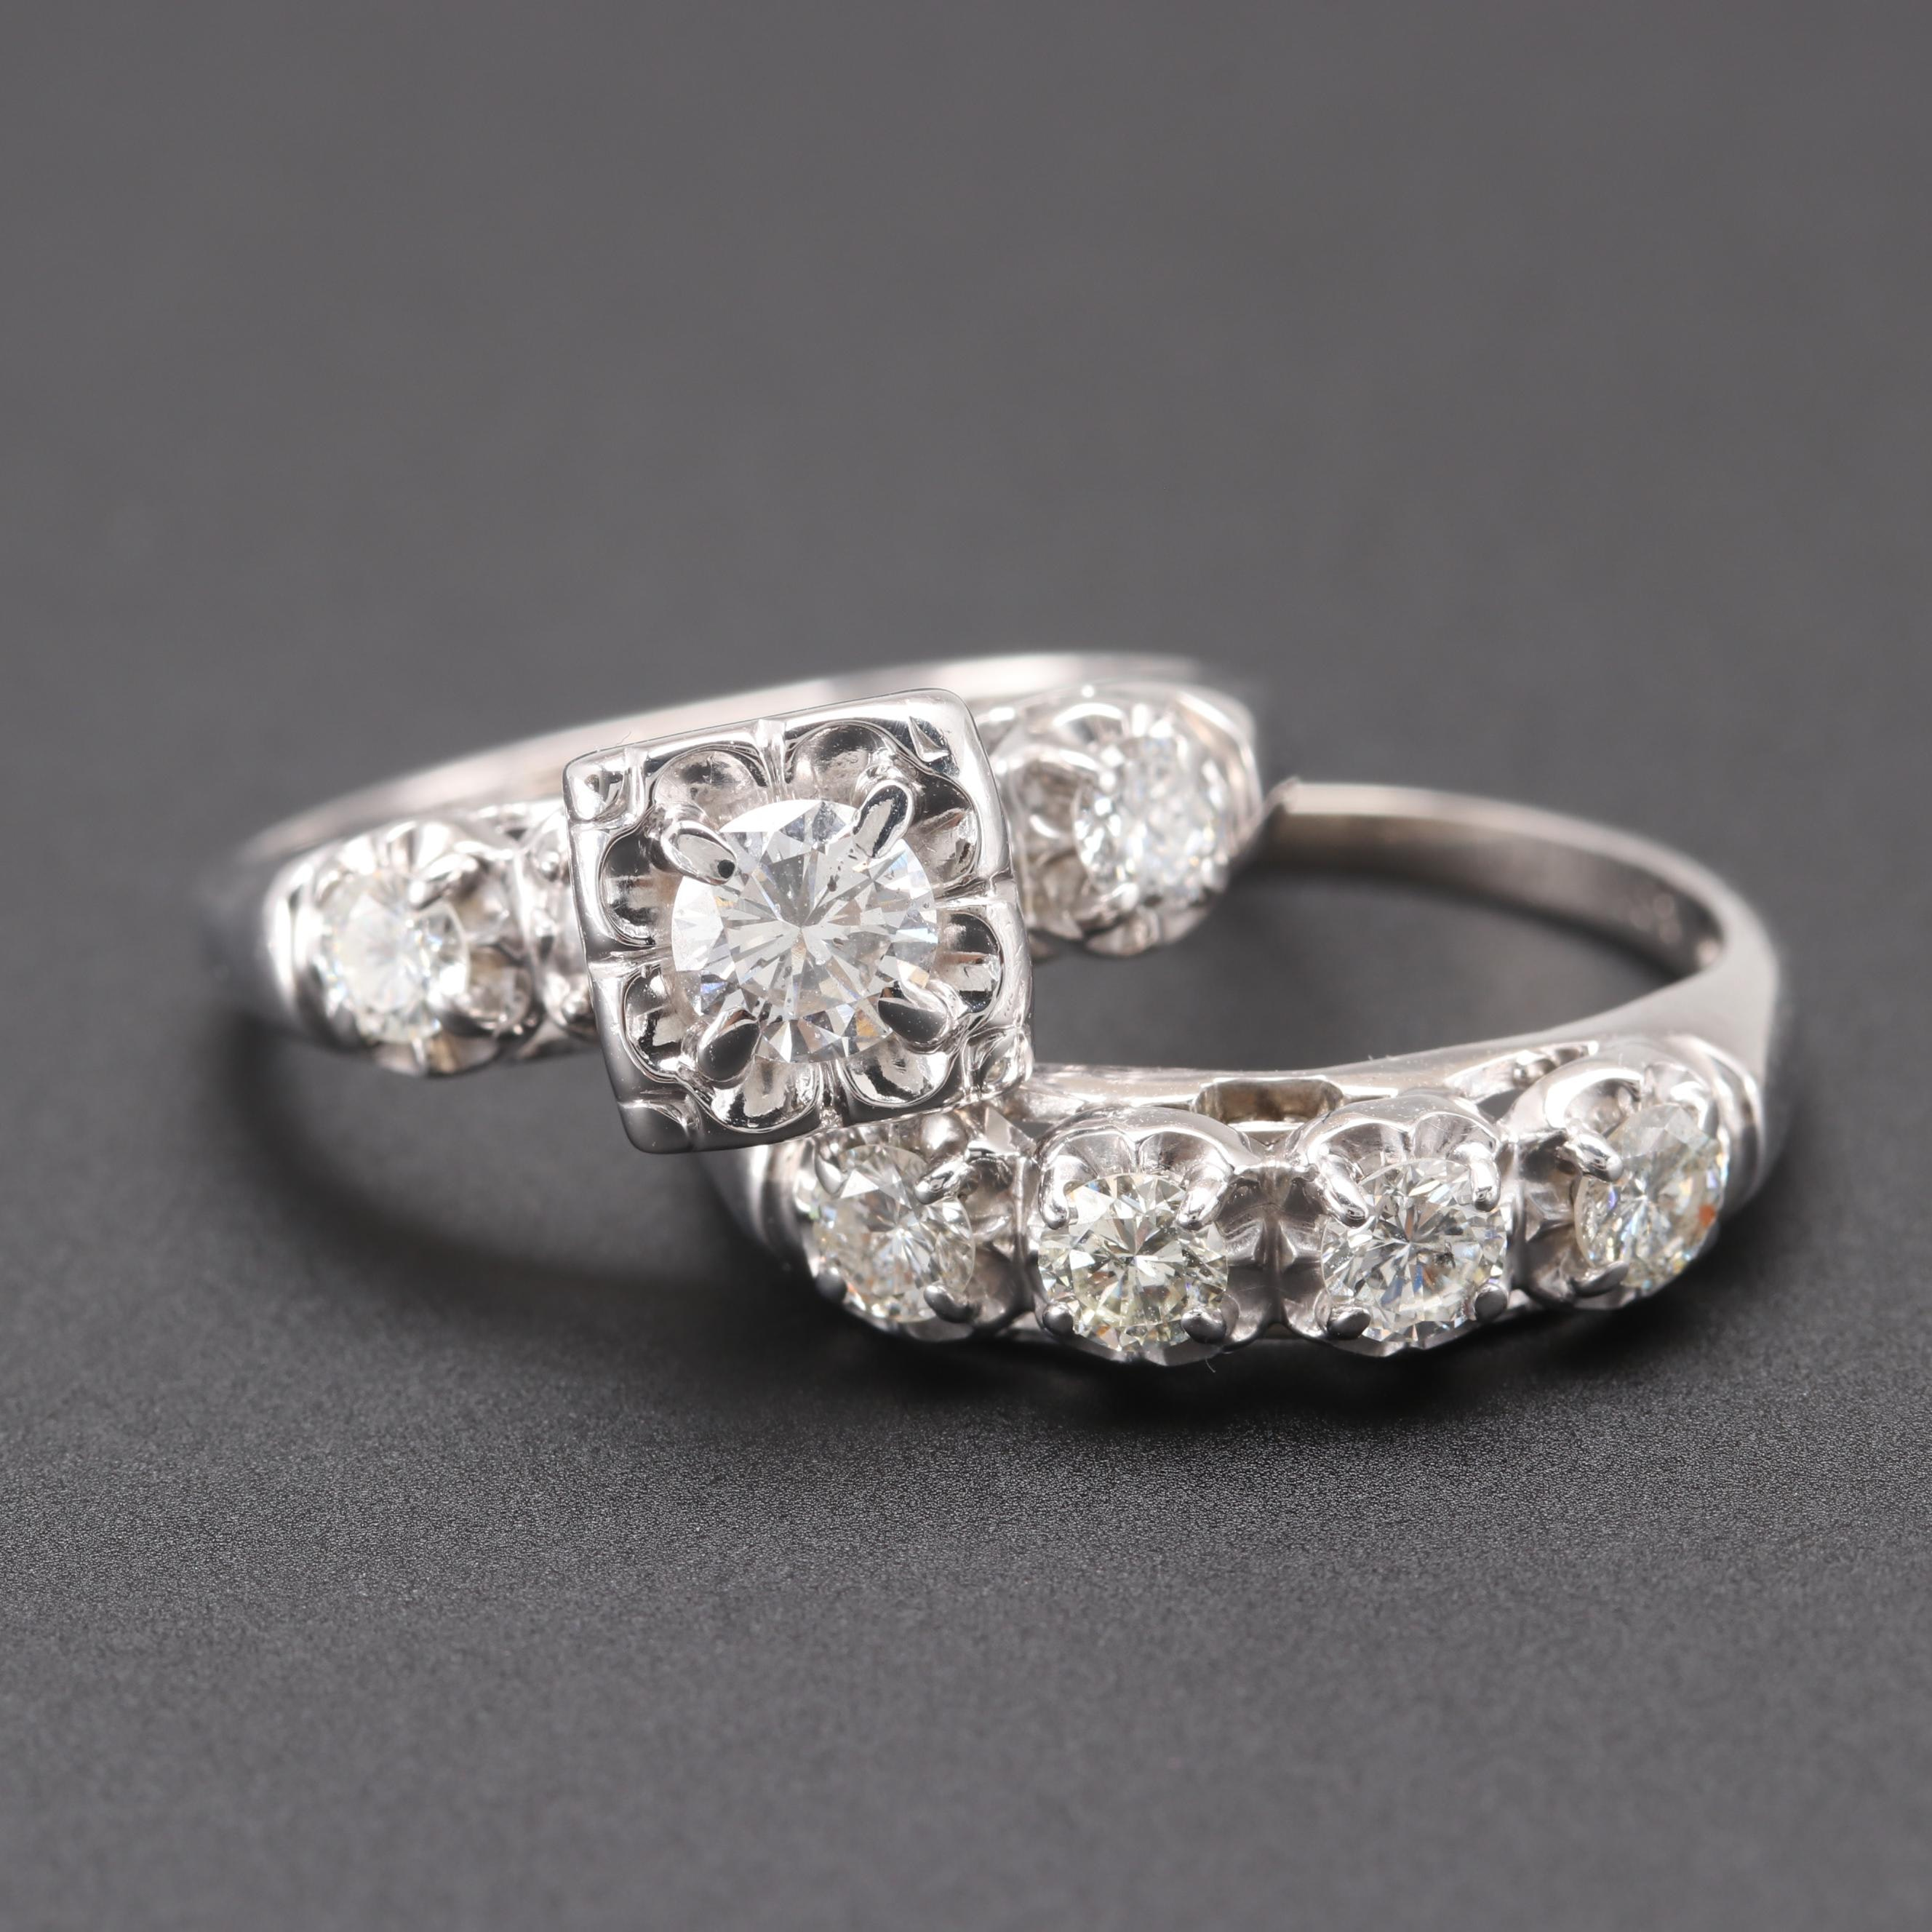 Vintage 14K White Gold 0.99 CTW Diamond Ring Set